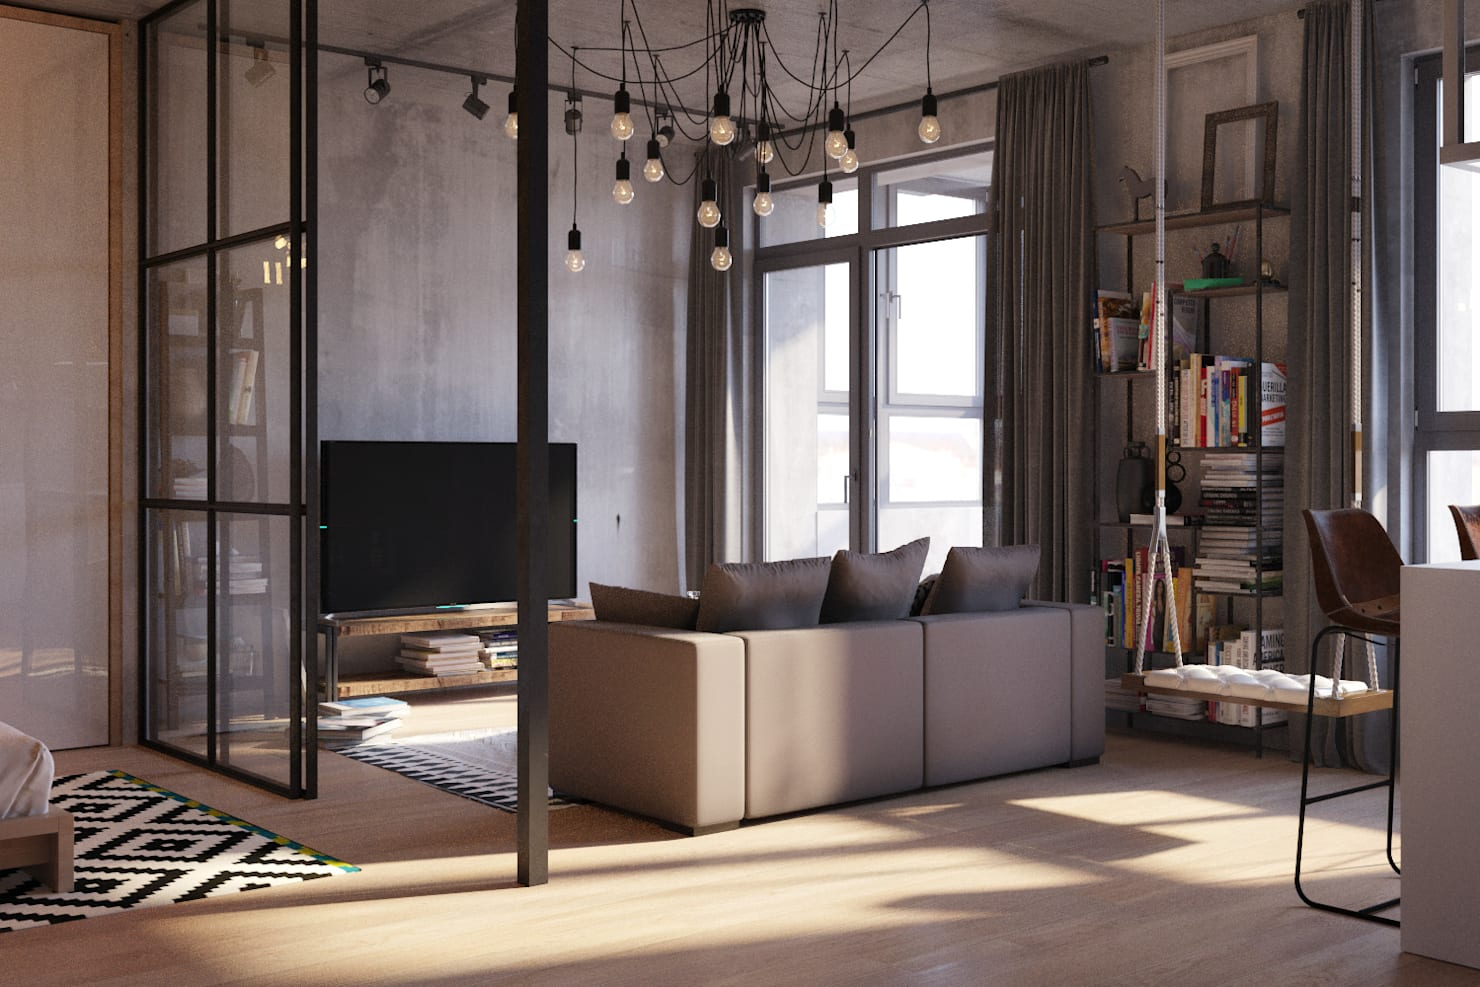 8 cool ways to separate space in your small home